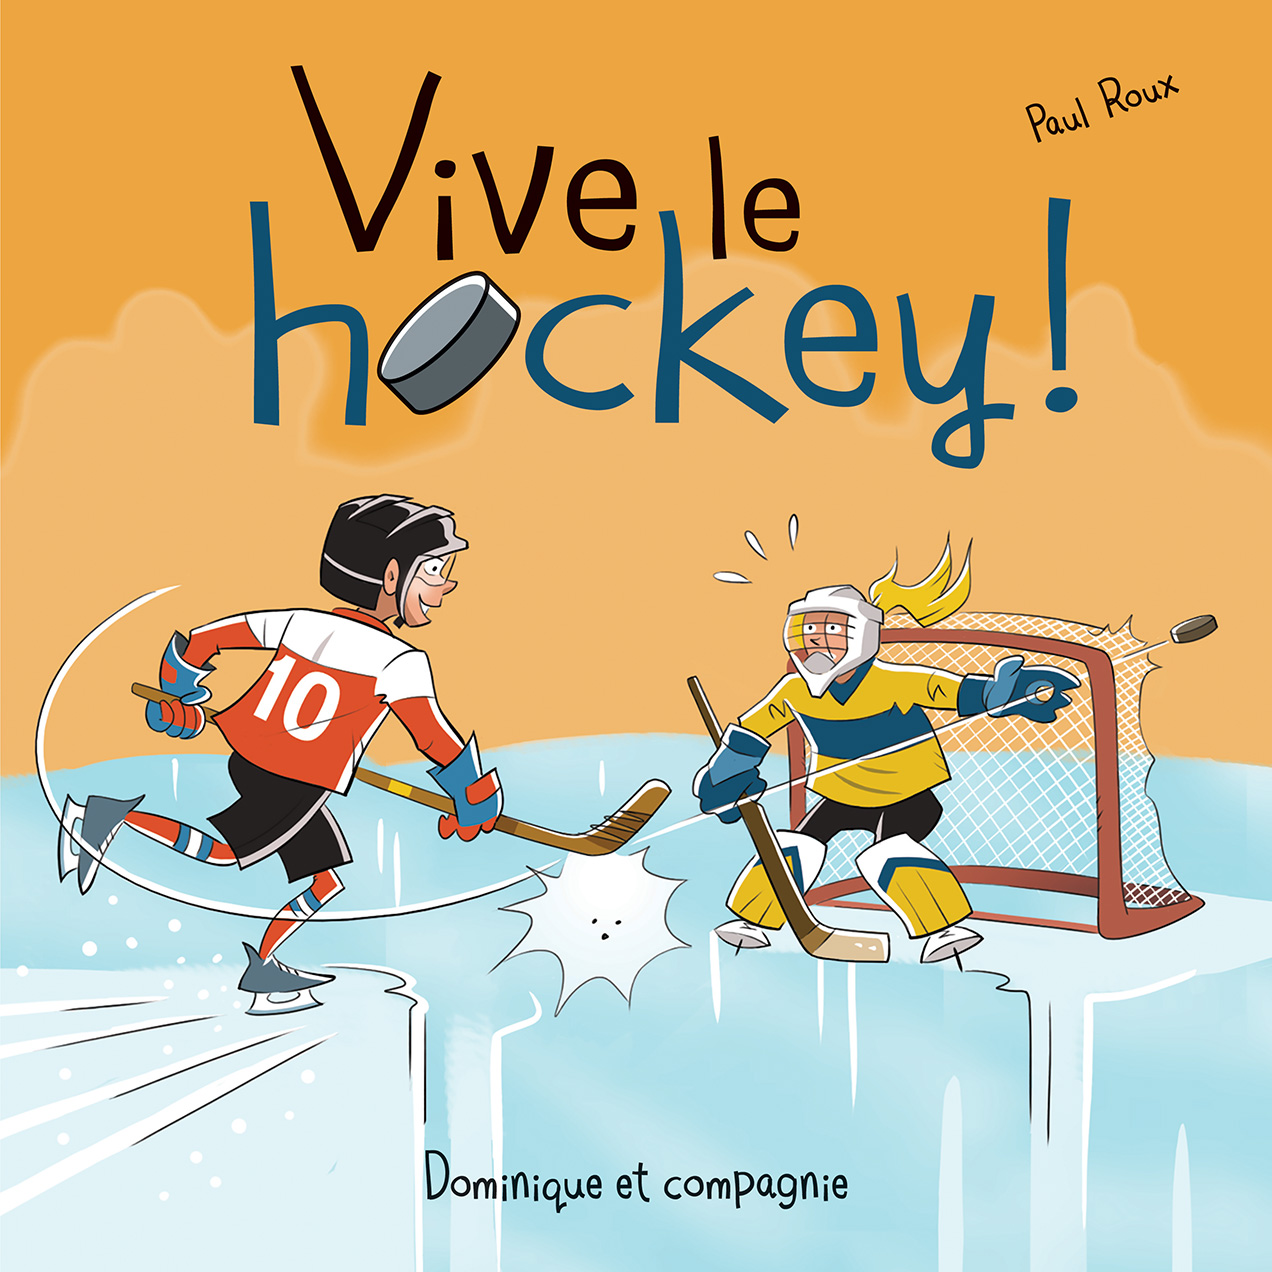 Vive le hockey!